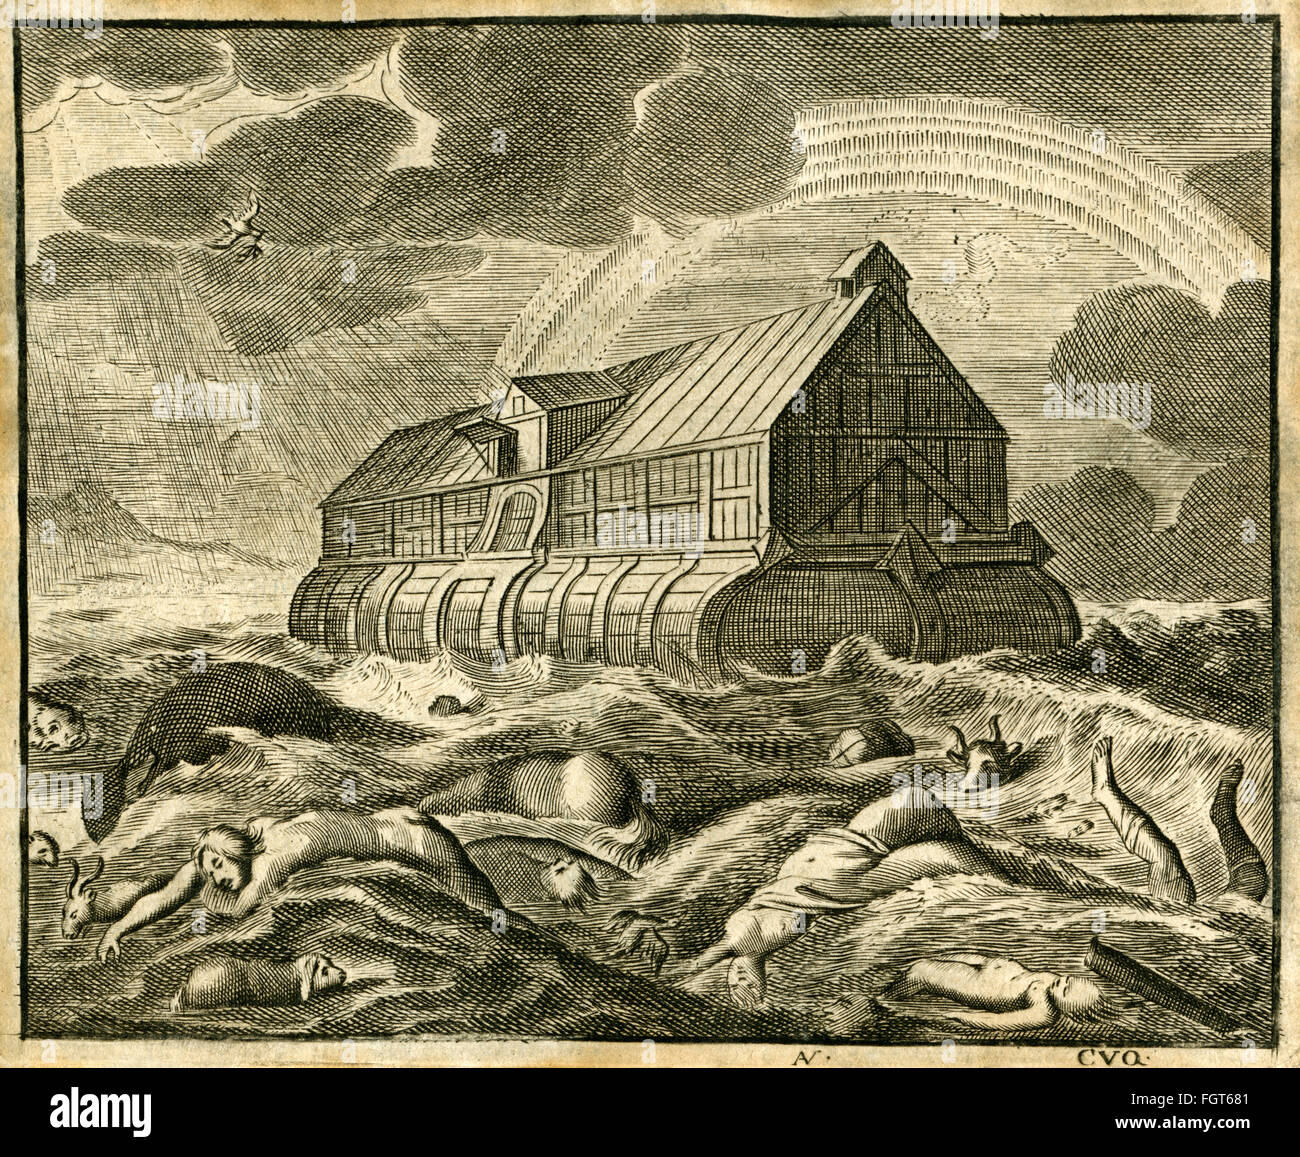 Noah's Ark, copperplate engraving from an dutch Bible, printed about 1700 religion, faith, Christianity, Noah´s - Stock Image